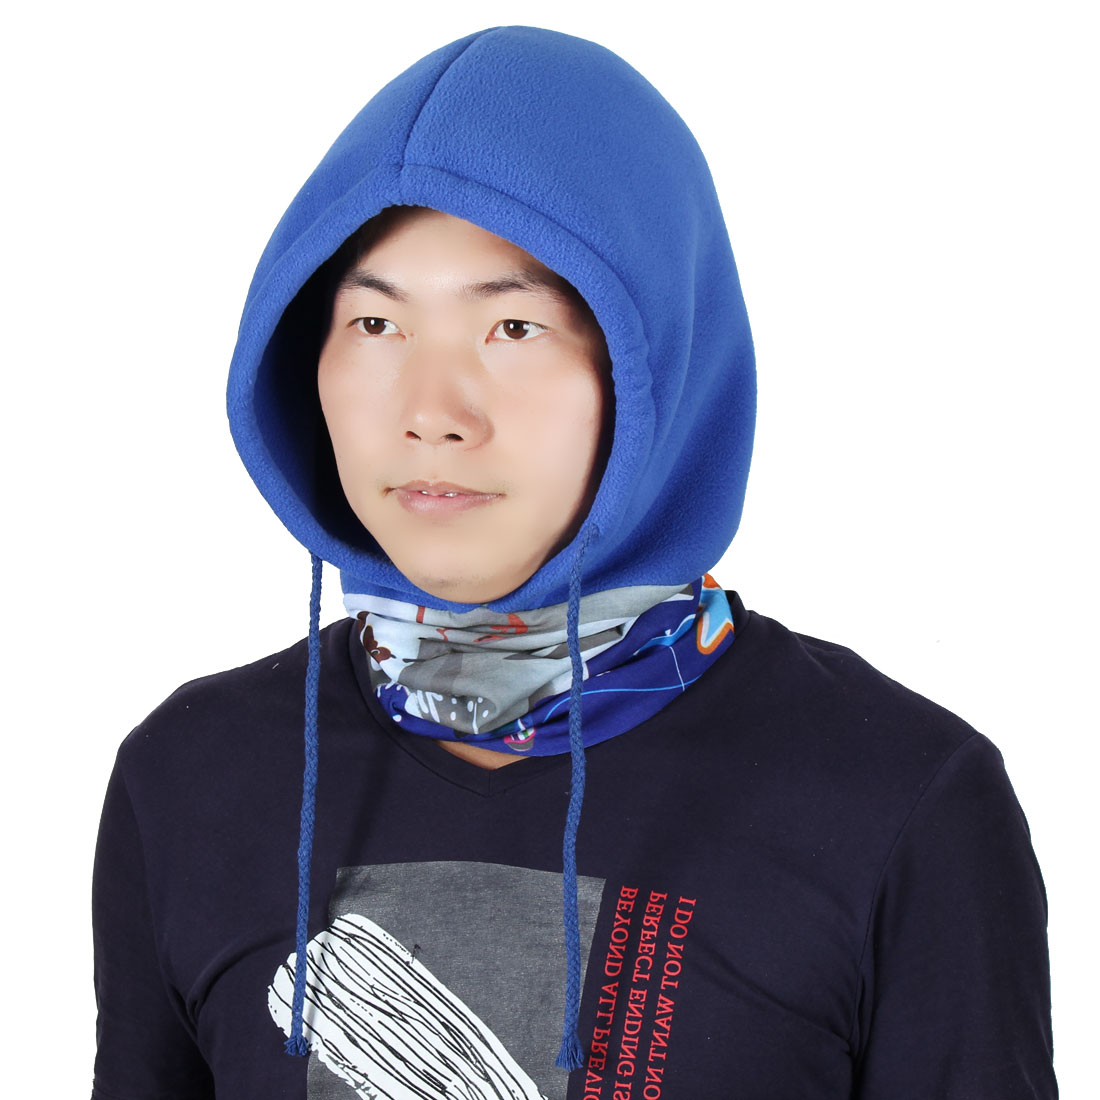 Adjustable Rope Riding Double Layer Head Wrap Neck Protector Balaclava Dark Blue by Unique-Bargains